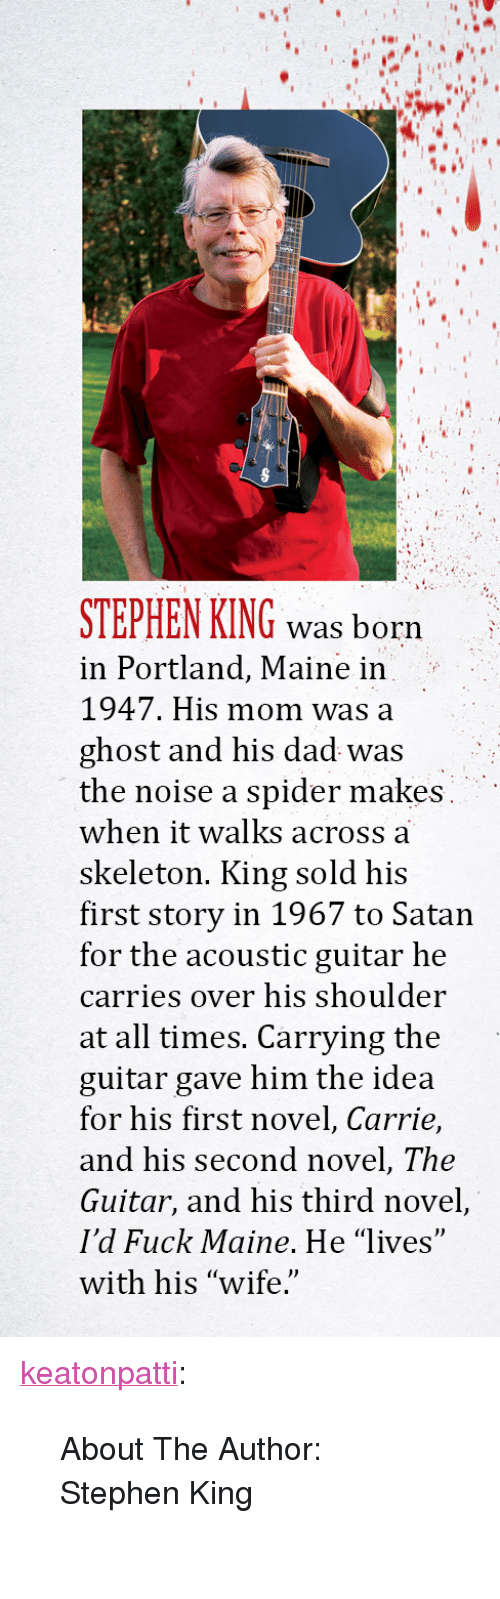 "Dad, Spider, and Stephen: STEPHEN KING was born  in Portland, Maine in  1947. His mom was a  ghost and his dad was  the noise a spider makes  when it walks across a  skeleton. King sold his  first story in 1967 to Satan  for the acoustic guitar he  carries over his shoulder  at all times. Carrying the  guitar gave him the idea  for his first novel, Carrie,  and his second novel, The  Guitar, and his third novel,  I'd Fuck Maine. He ""lives""  with his ""wife. <p><a href=""http://keatonpatti.tumblr.com/post/167123891004/about-the-author-stephen-king"" class=""tumblr_blog"">keatonpatti</a>:</p><blockquote><p style=""""> About The Author: Stephen King<br/><br/></p></blockquote>"